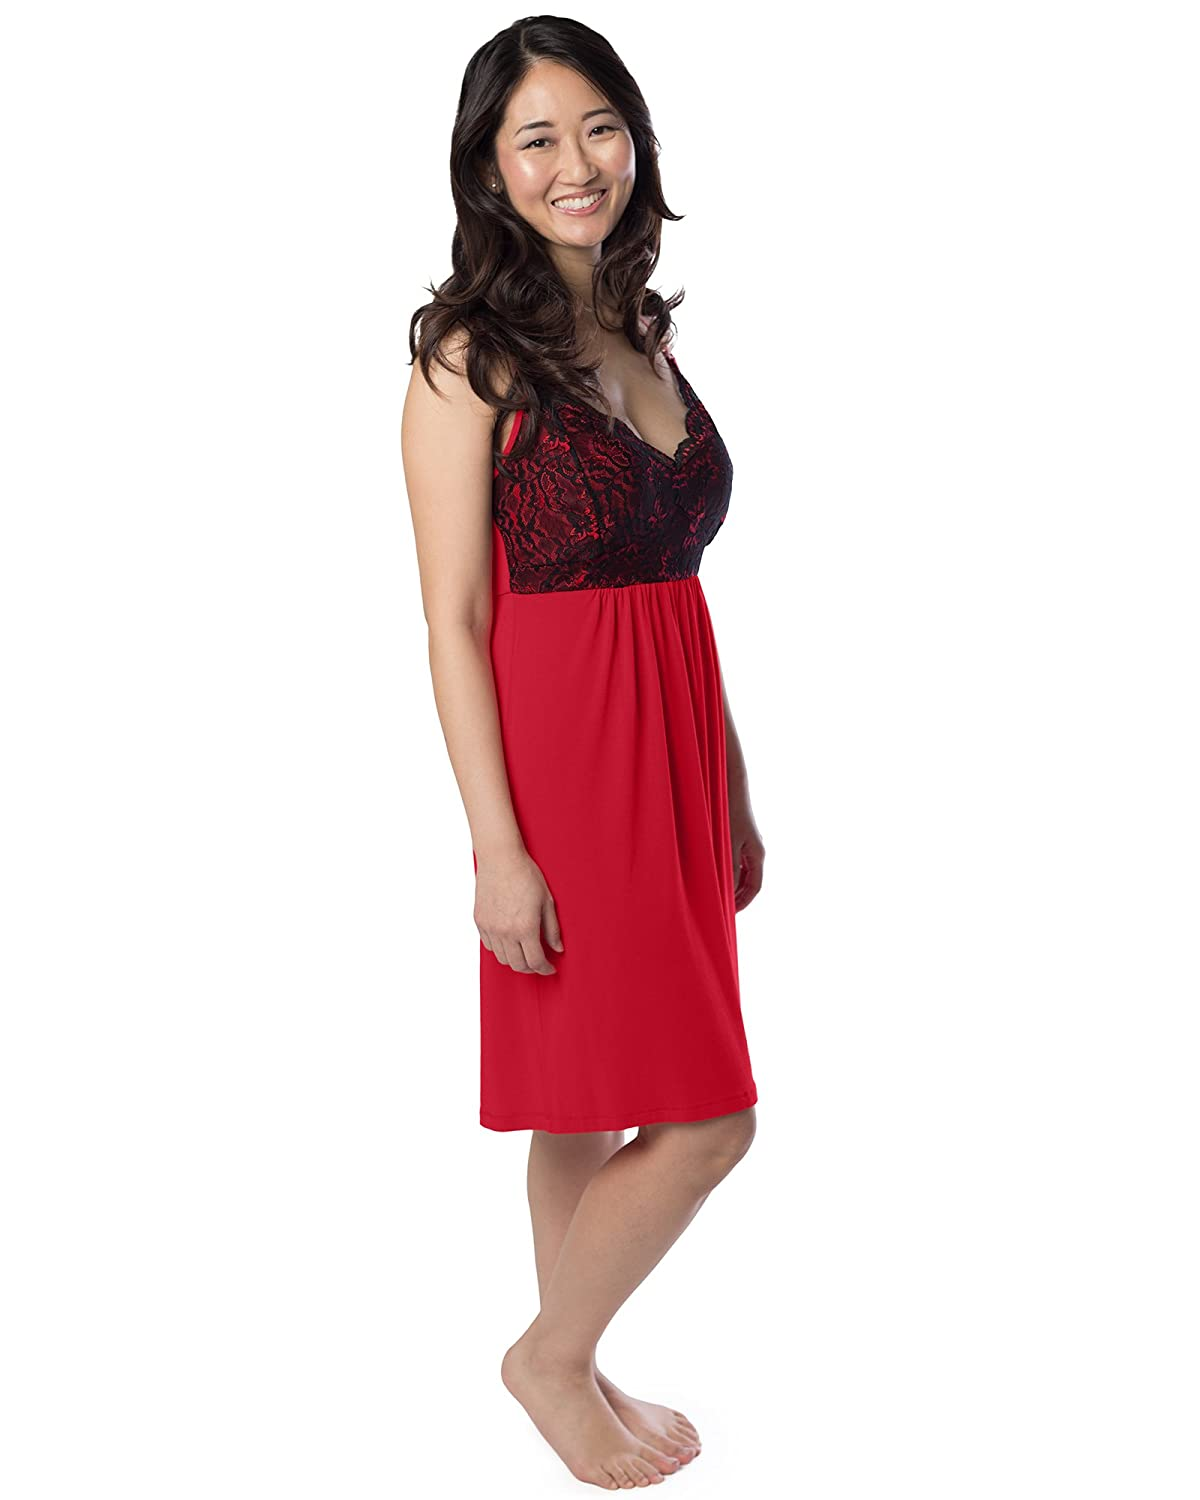 70e948556beef Kindred Bravely Lucille Nursing Nightgown   Maternity Gown - Multicoloured  - XXX-Large  Amazon.co.uk  Clothing